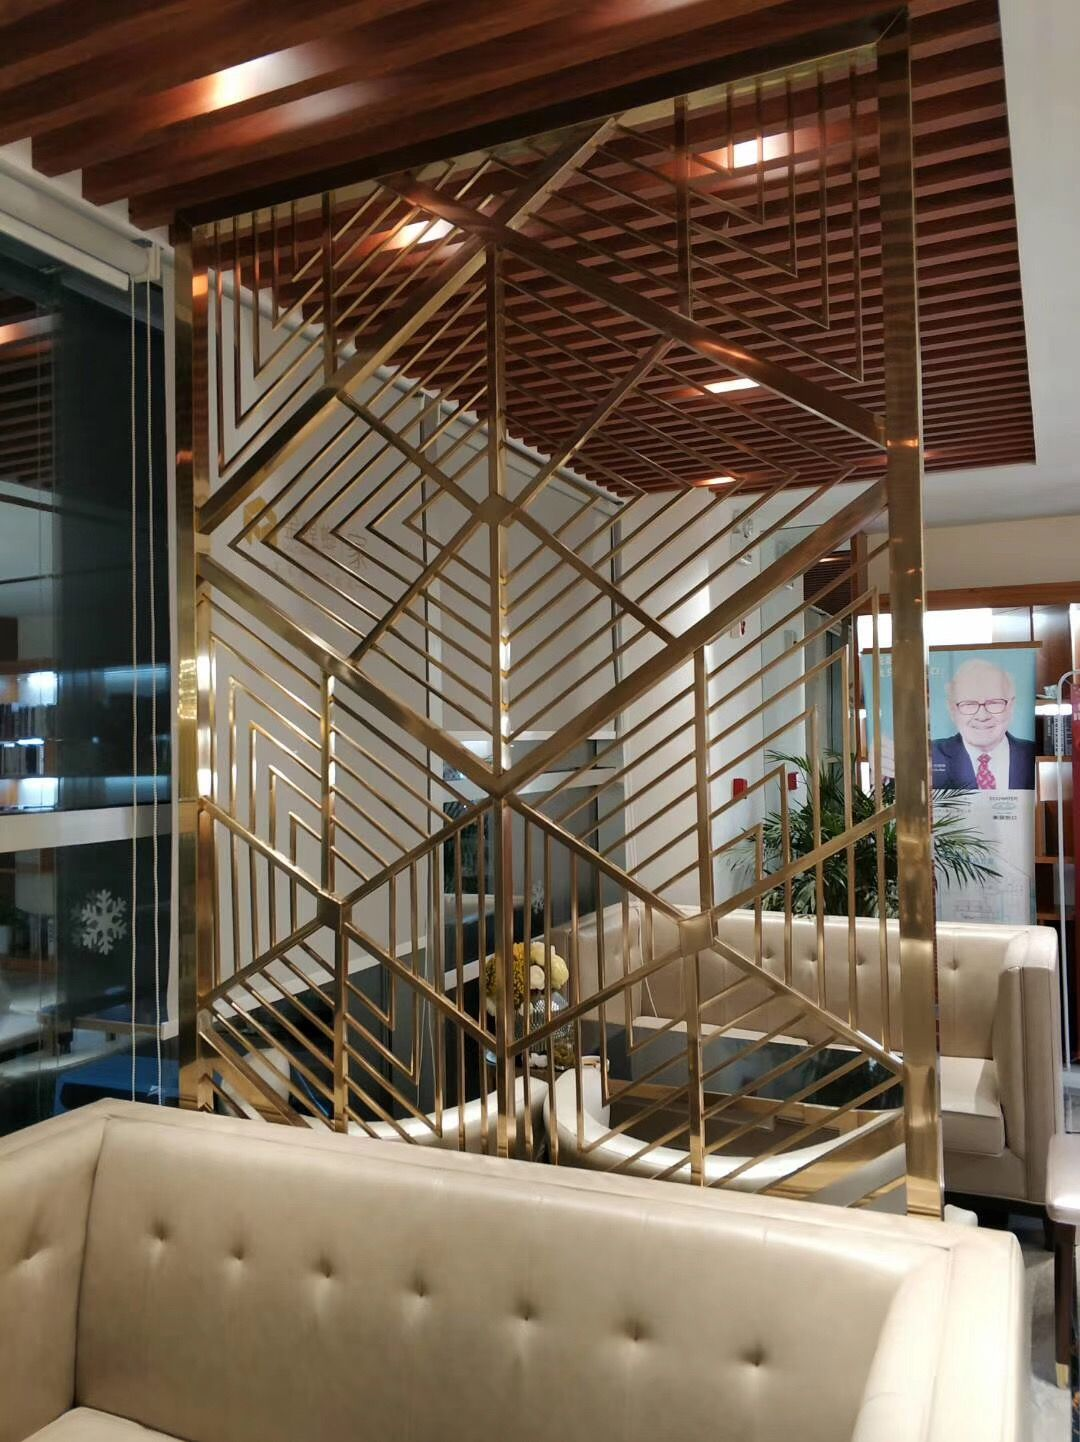 Decorative Metal Screen Used As Room Divider